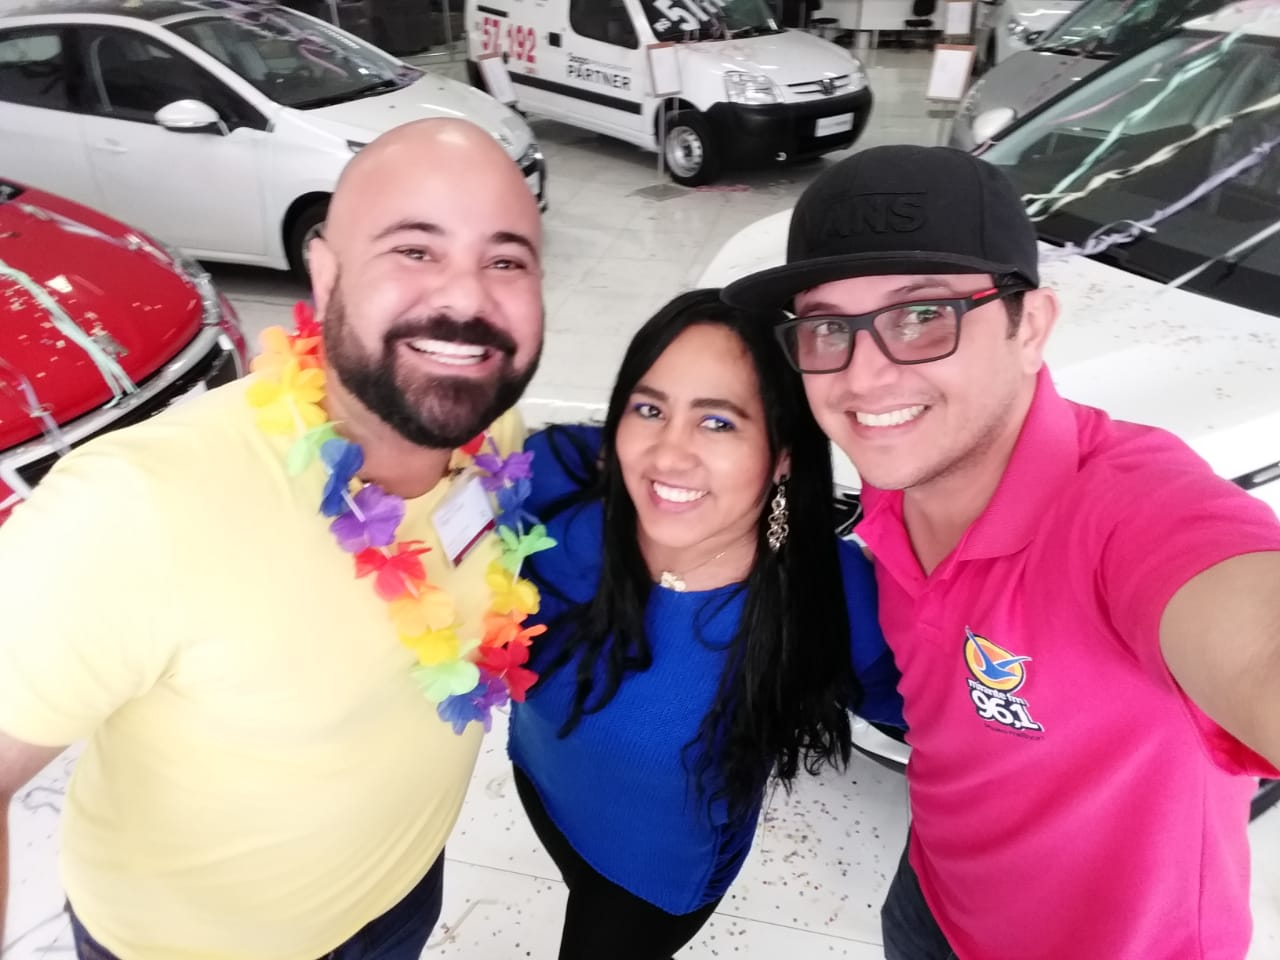 MiraFlash - Super Oferta de Carnaval na Citroen e Peugeot. Confira as fotos!